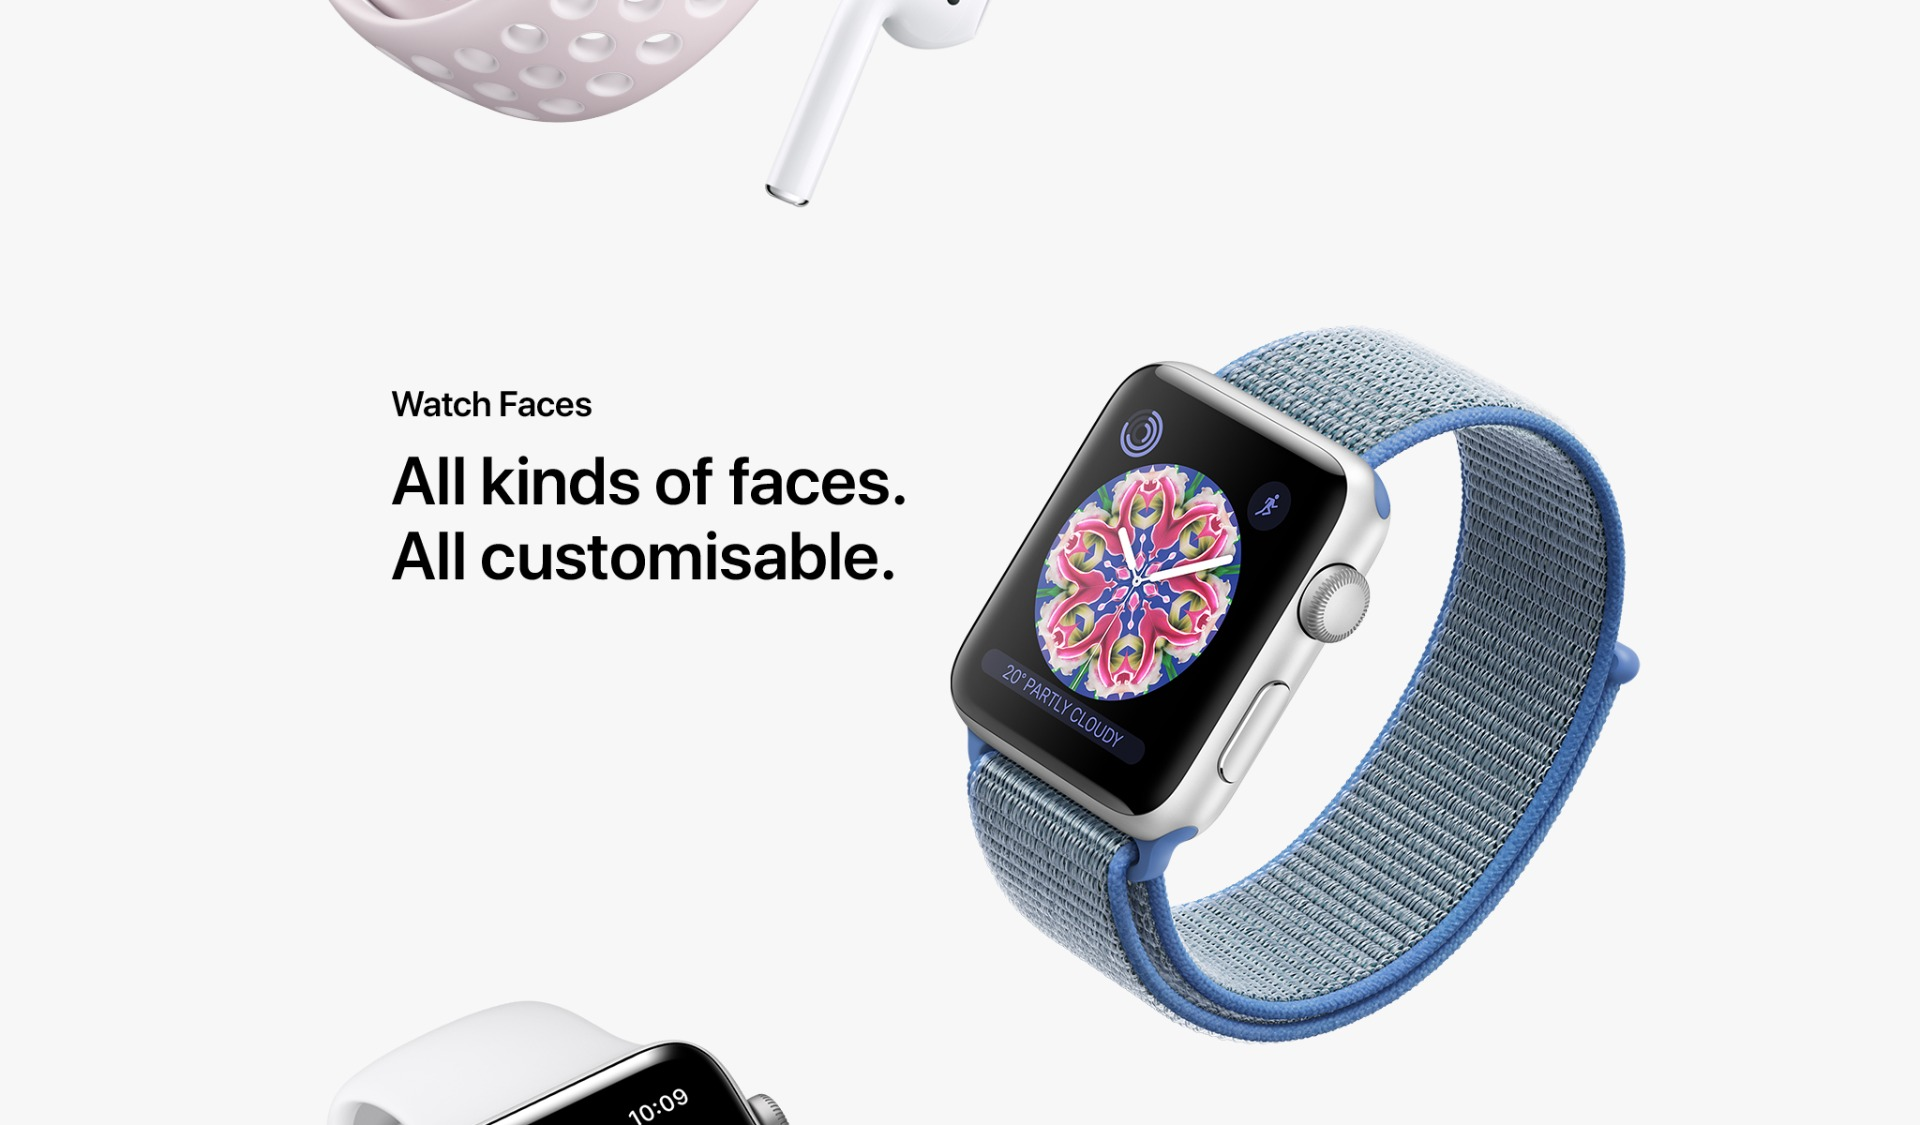 Apple Watch Series 3. Elevated in every way.